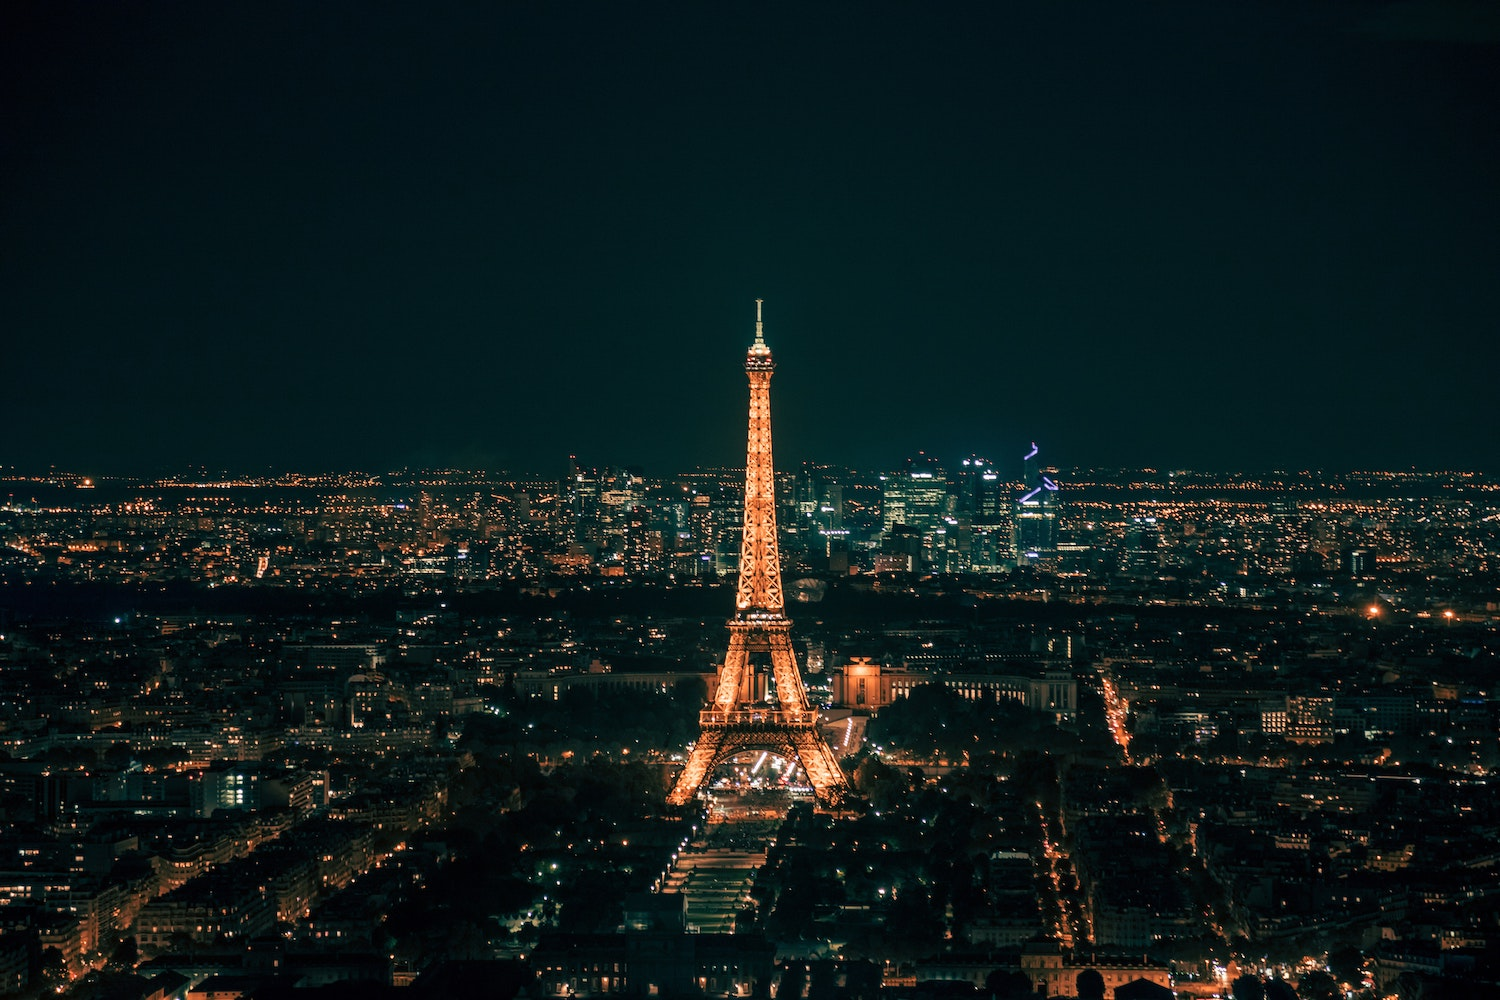 Eiffle Tower during the night